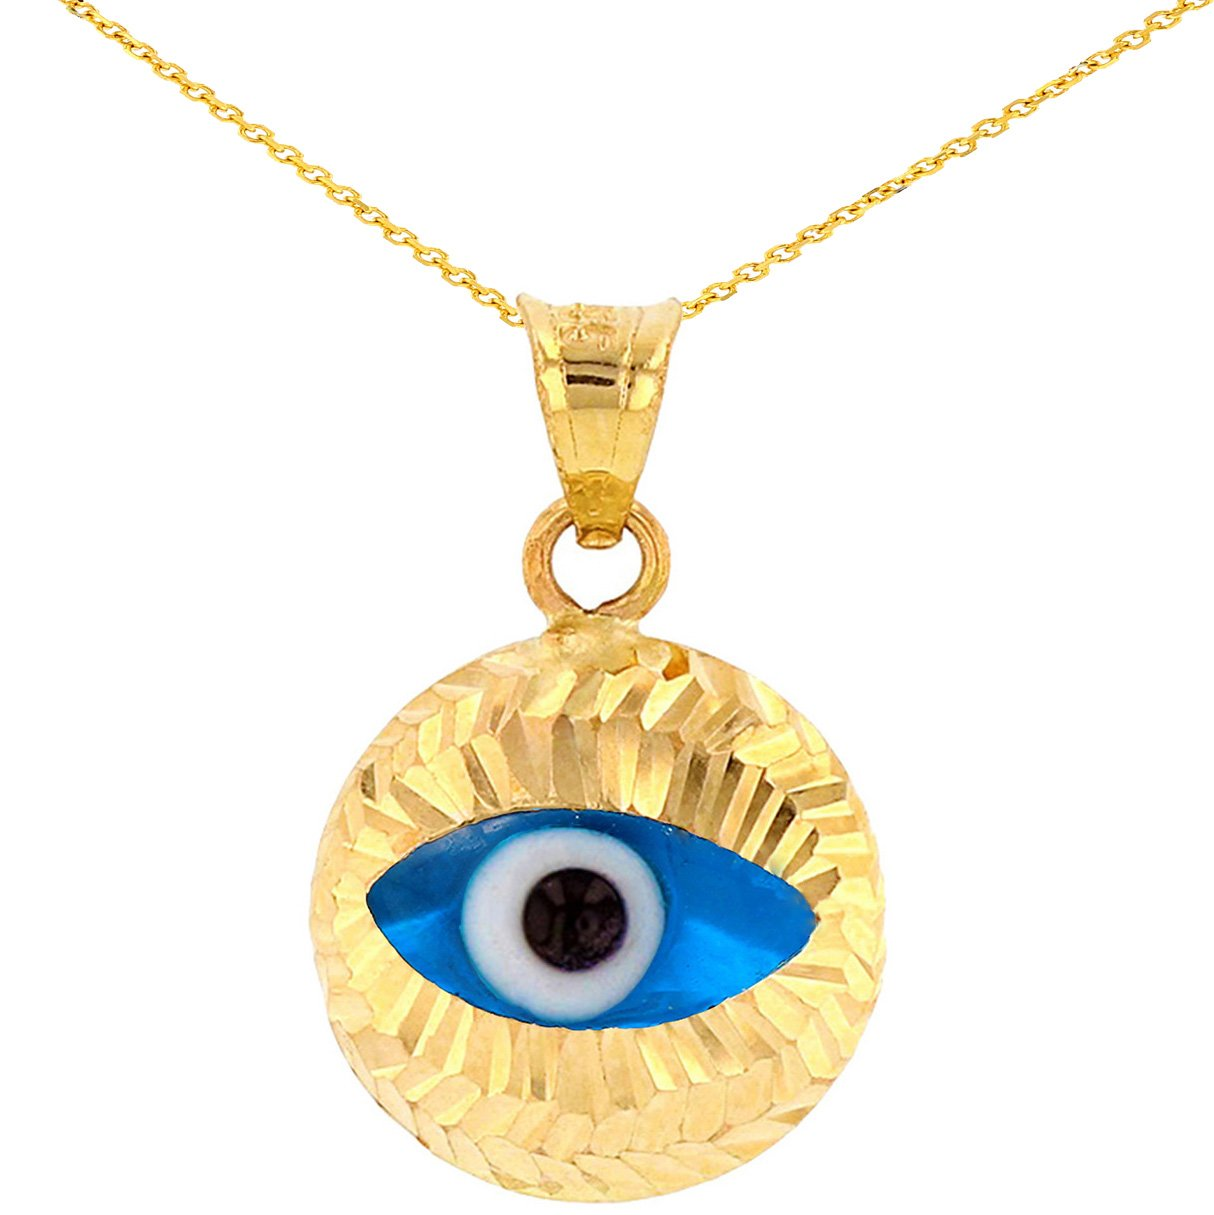 Textured 14k Gold Simple Blue Evil Eye Pendant Necklace, 16'' by JewelryAmerica